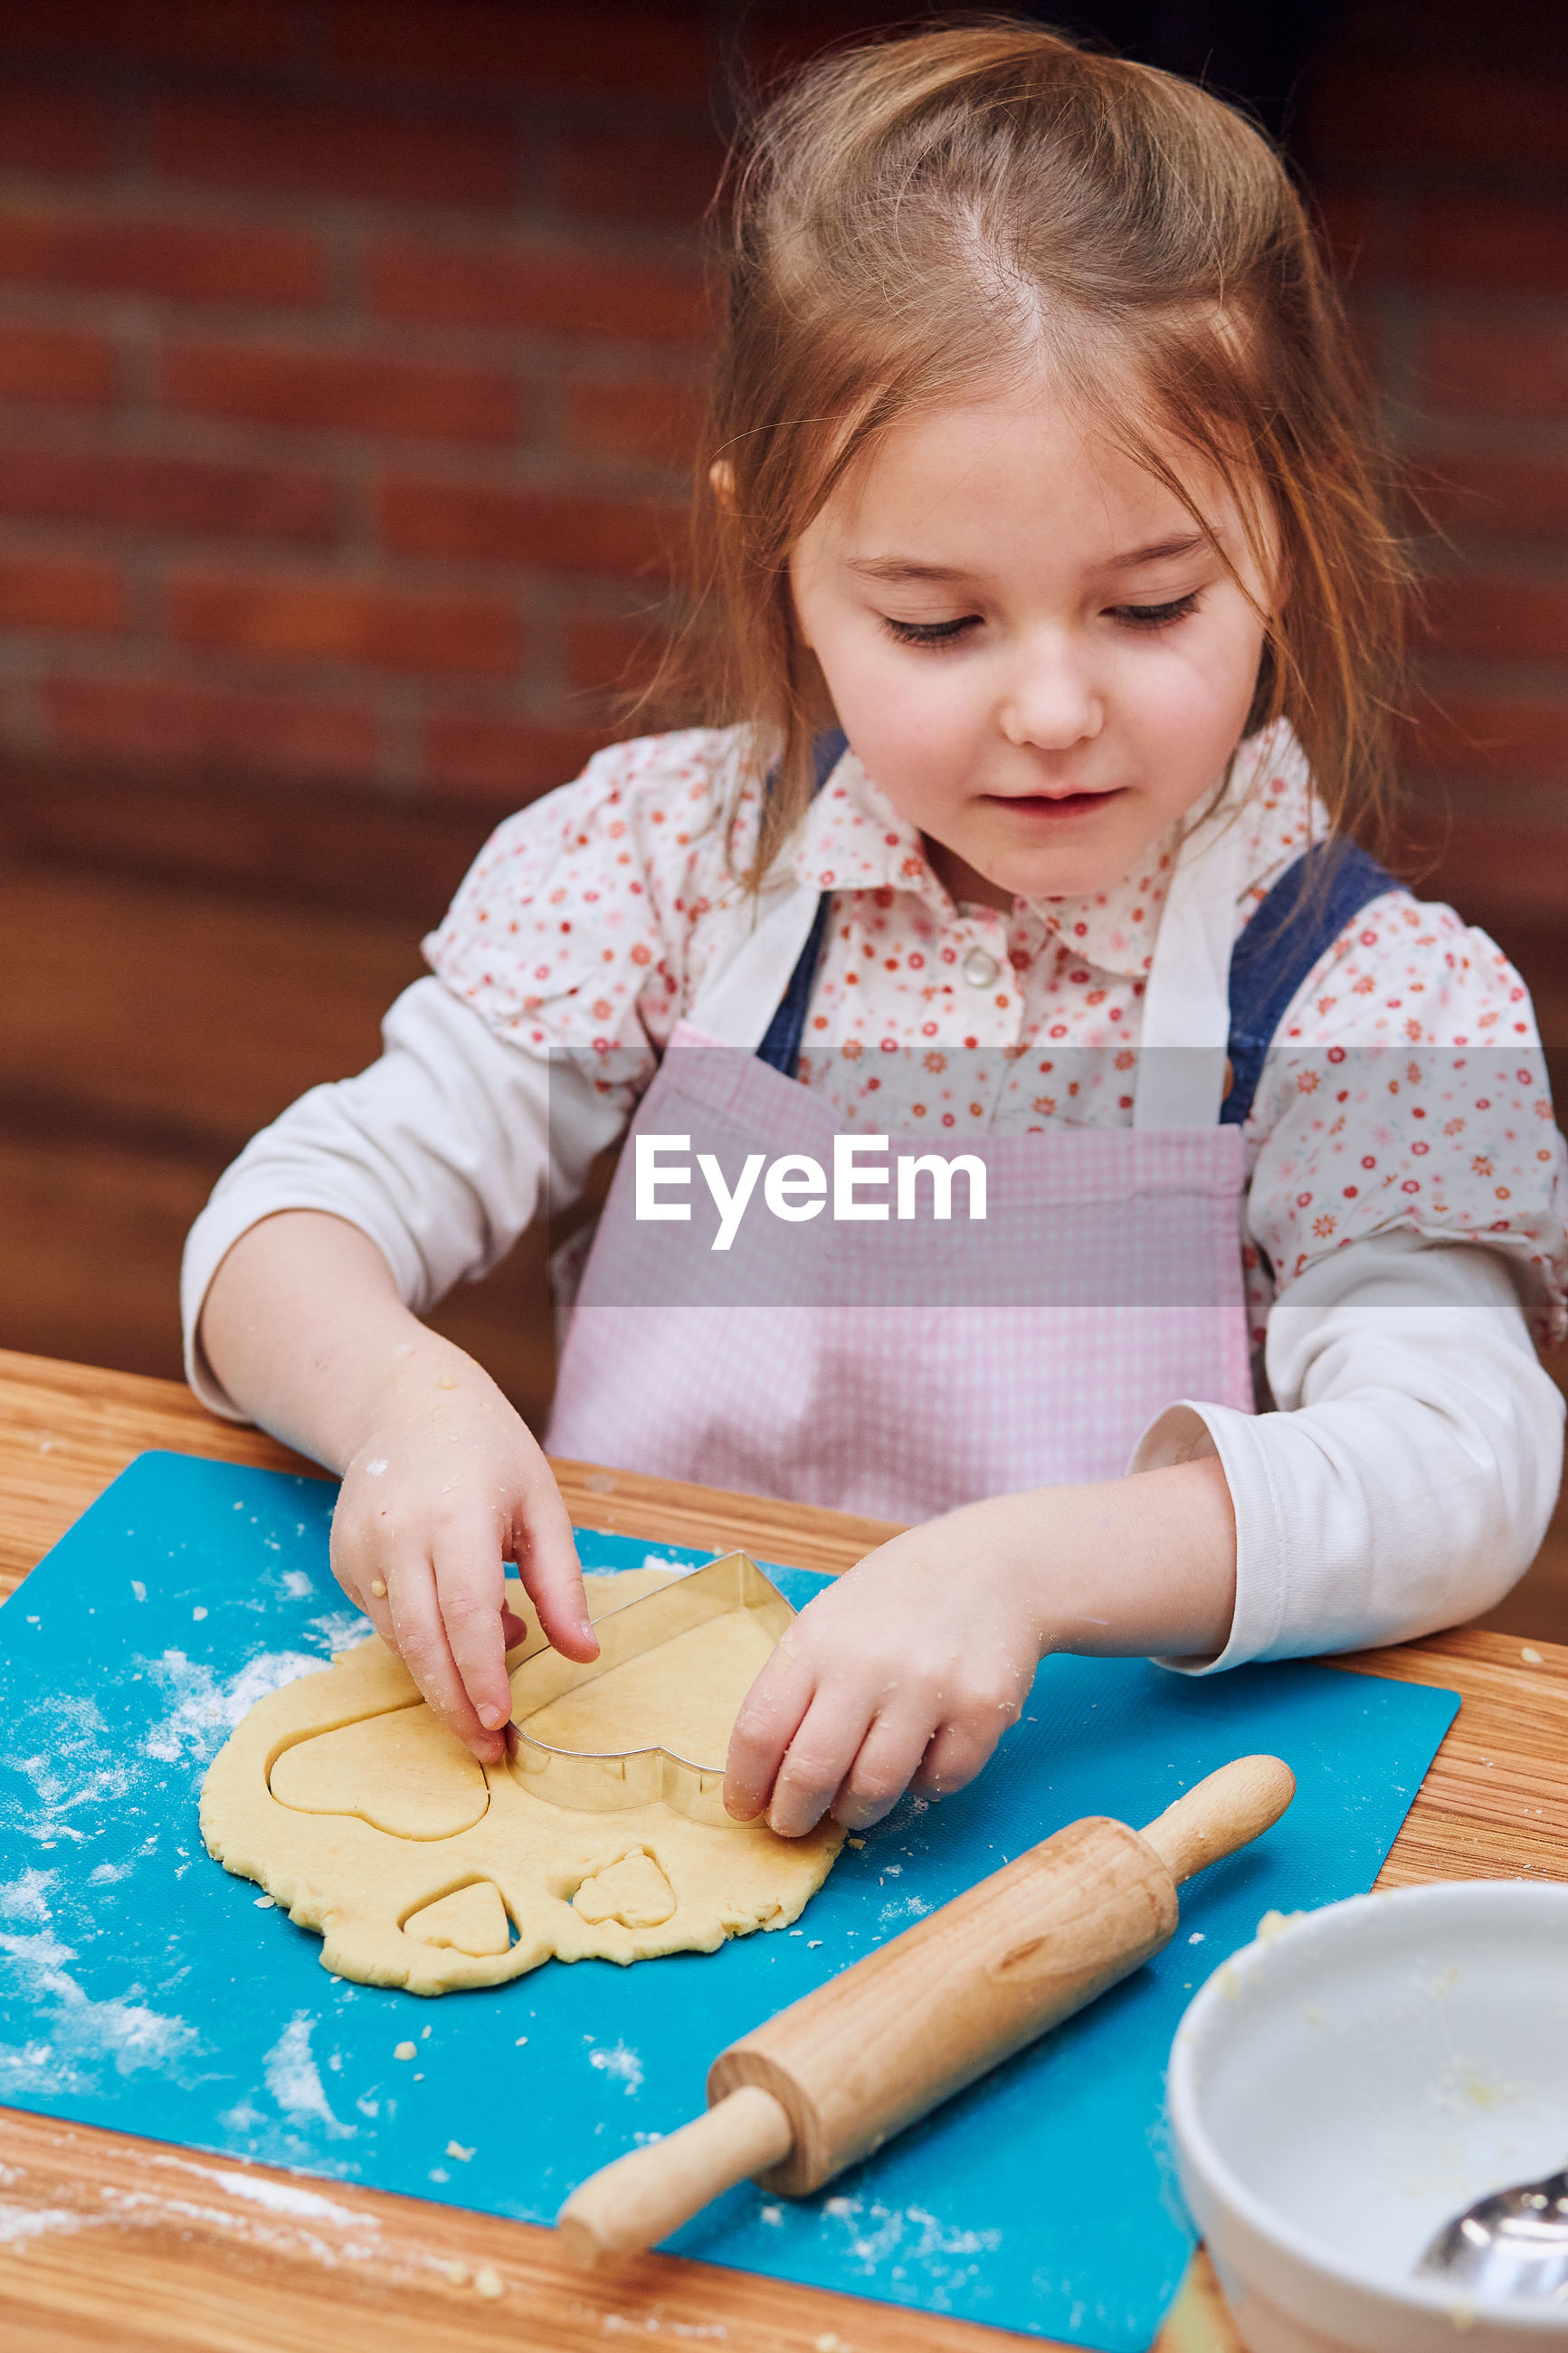 Girl preparing cookie at table